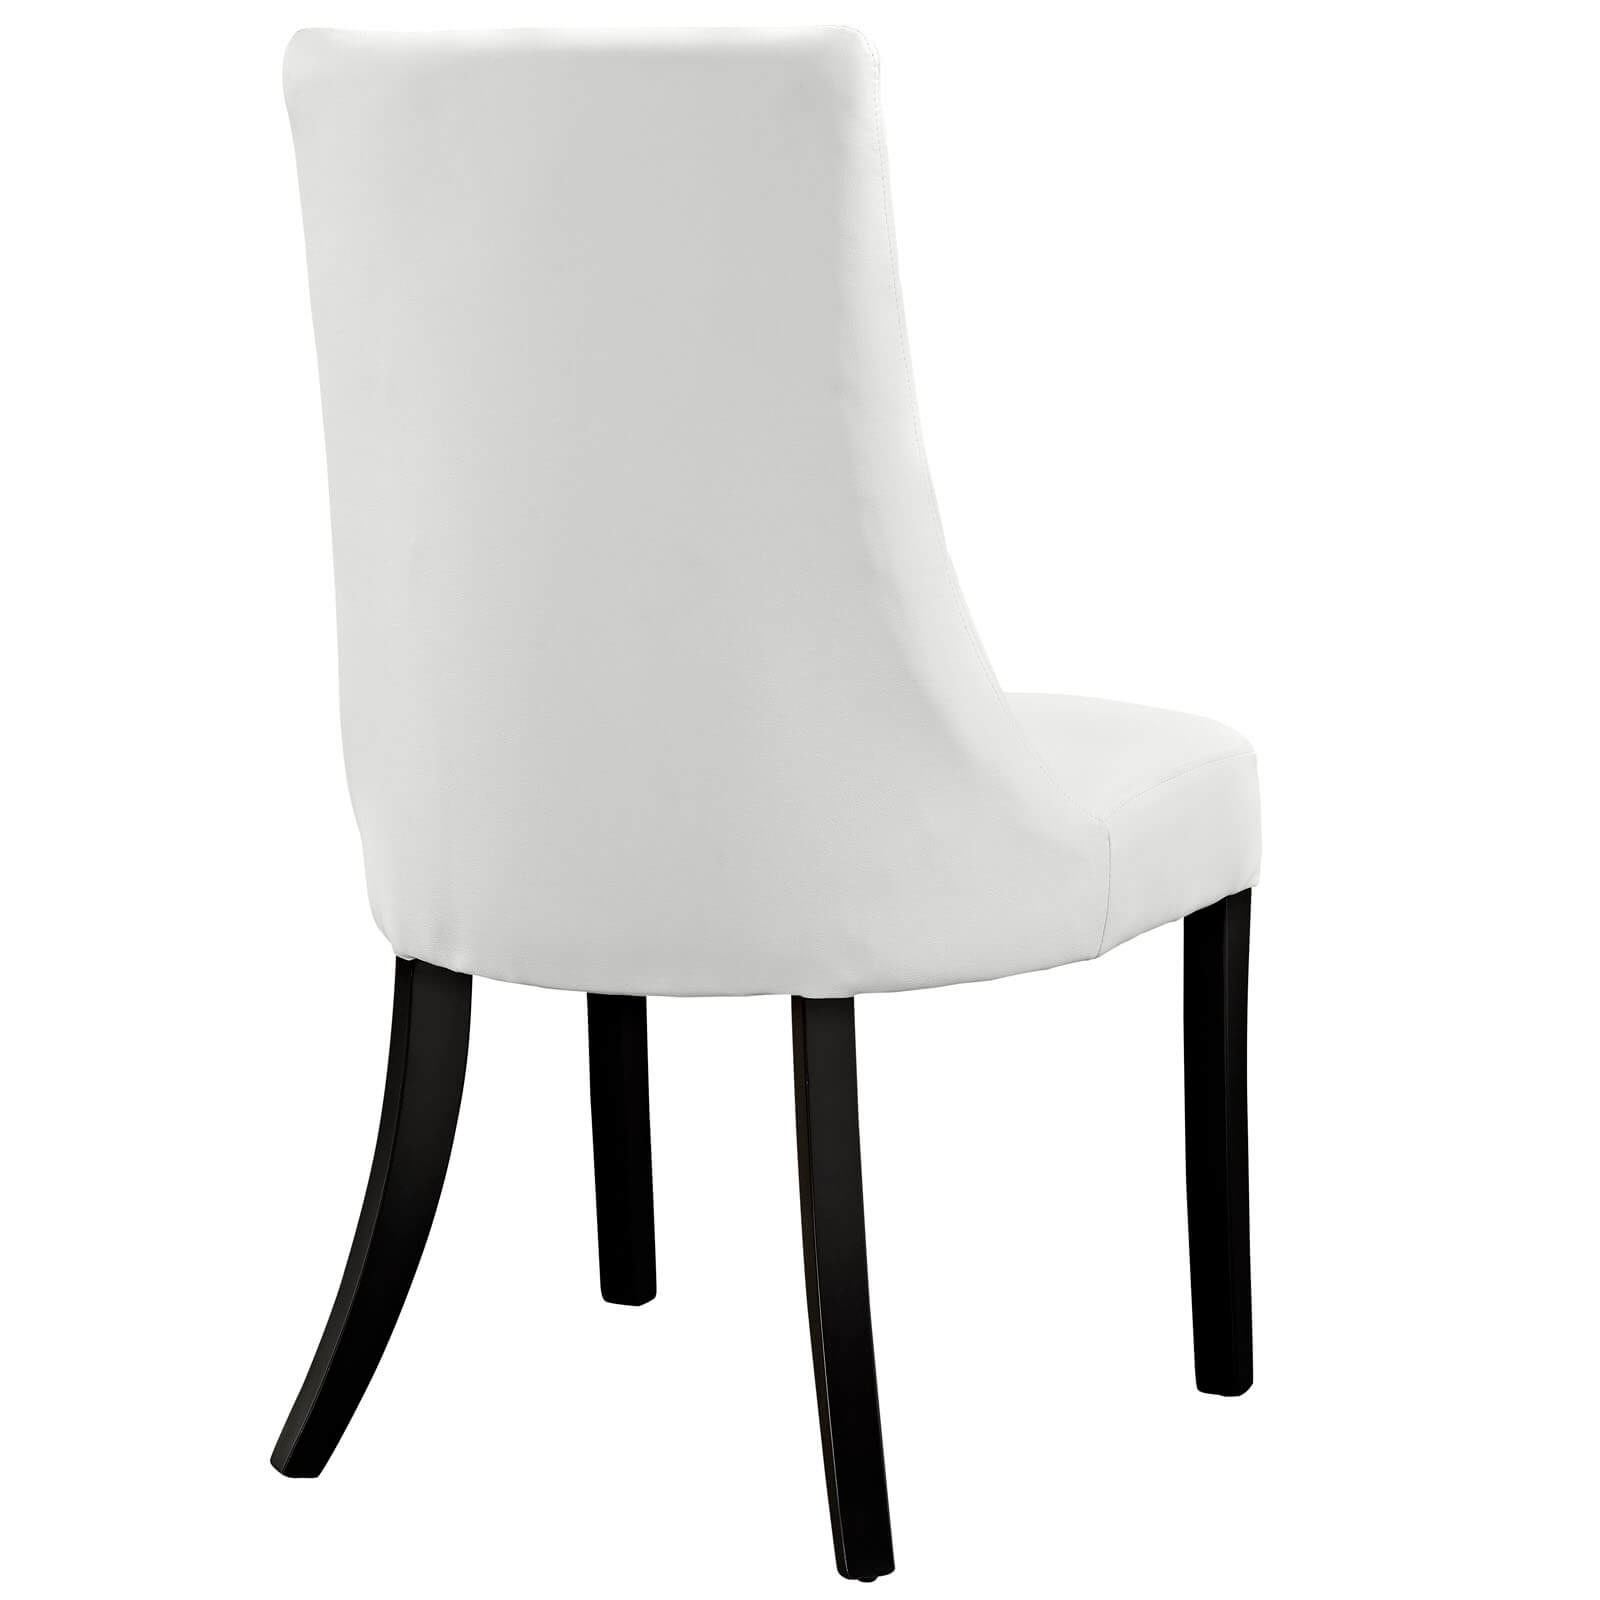 Upholstered dining chair back view